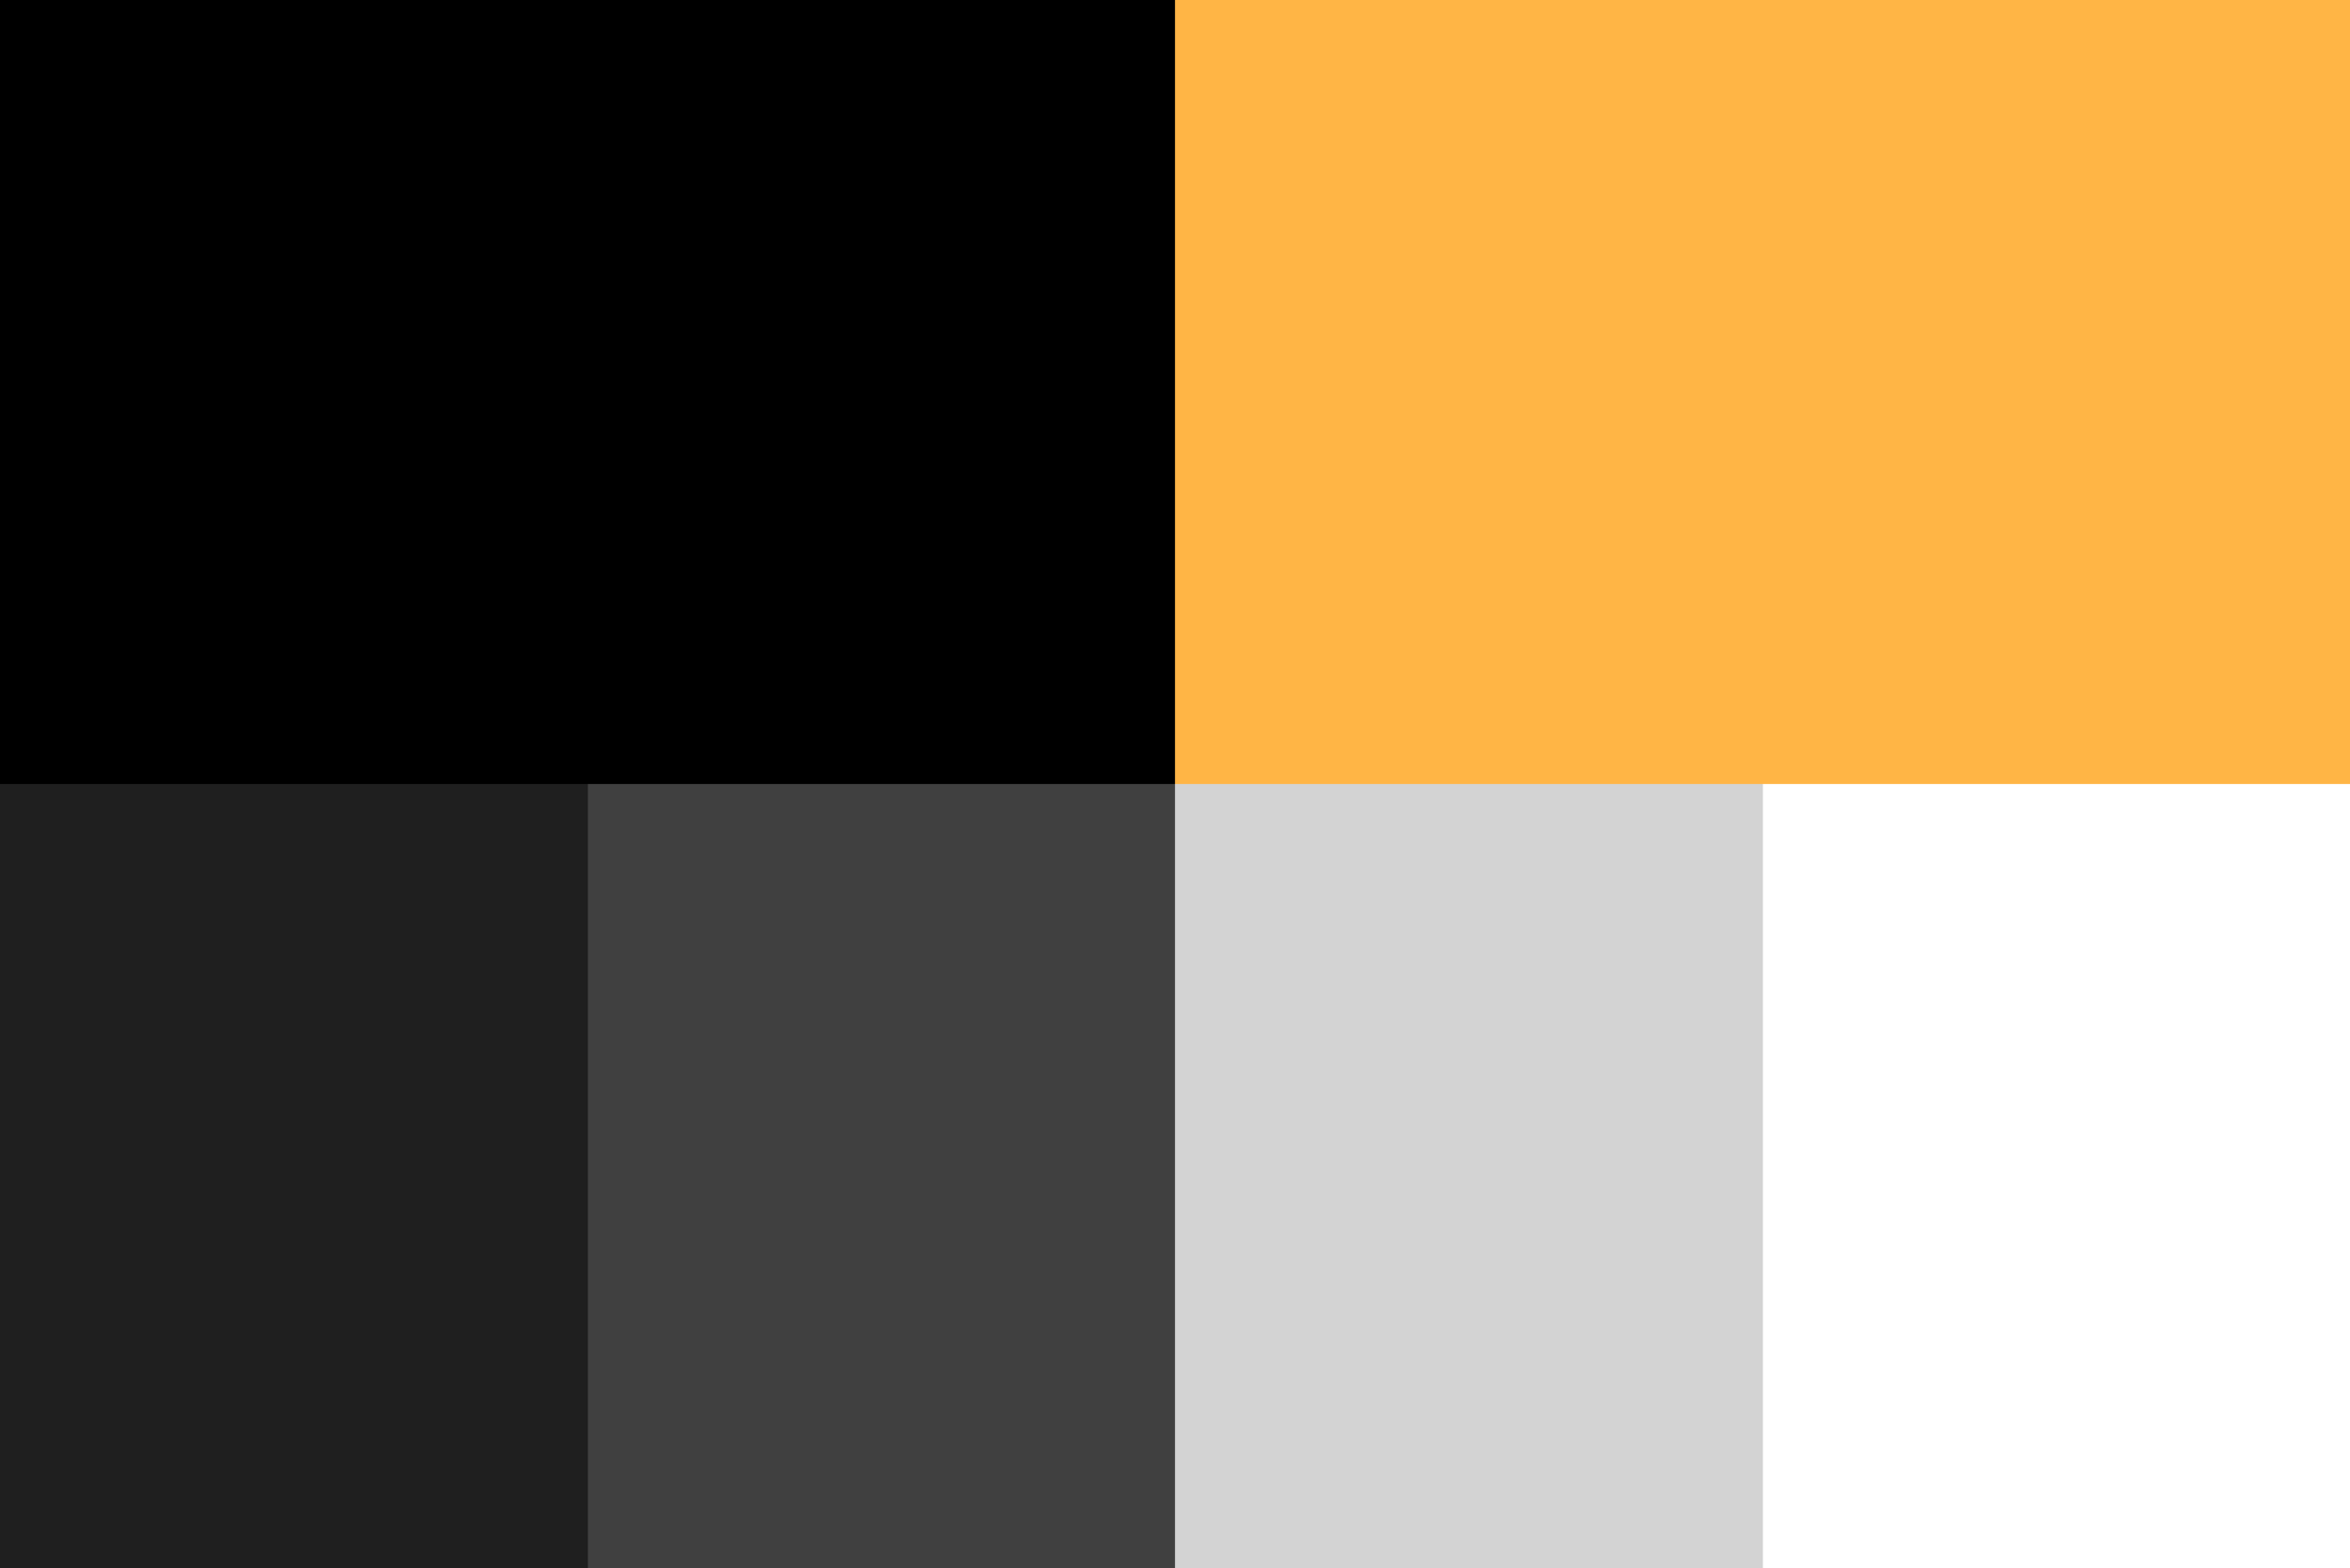 Samuel Lee Miller_Portfolio_Iconaday_Brand Colors.png